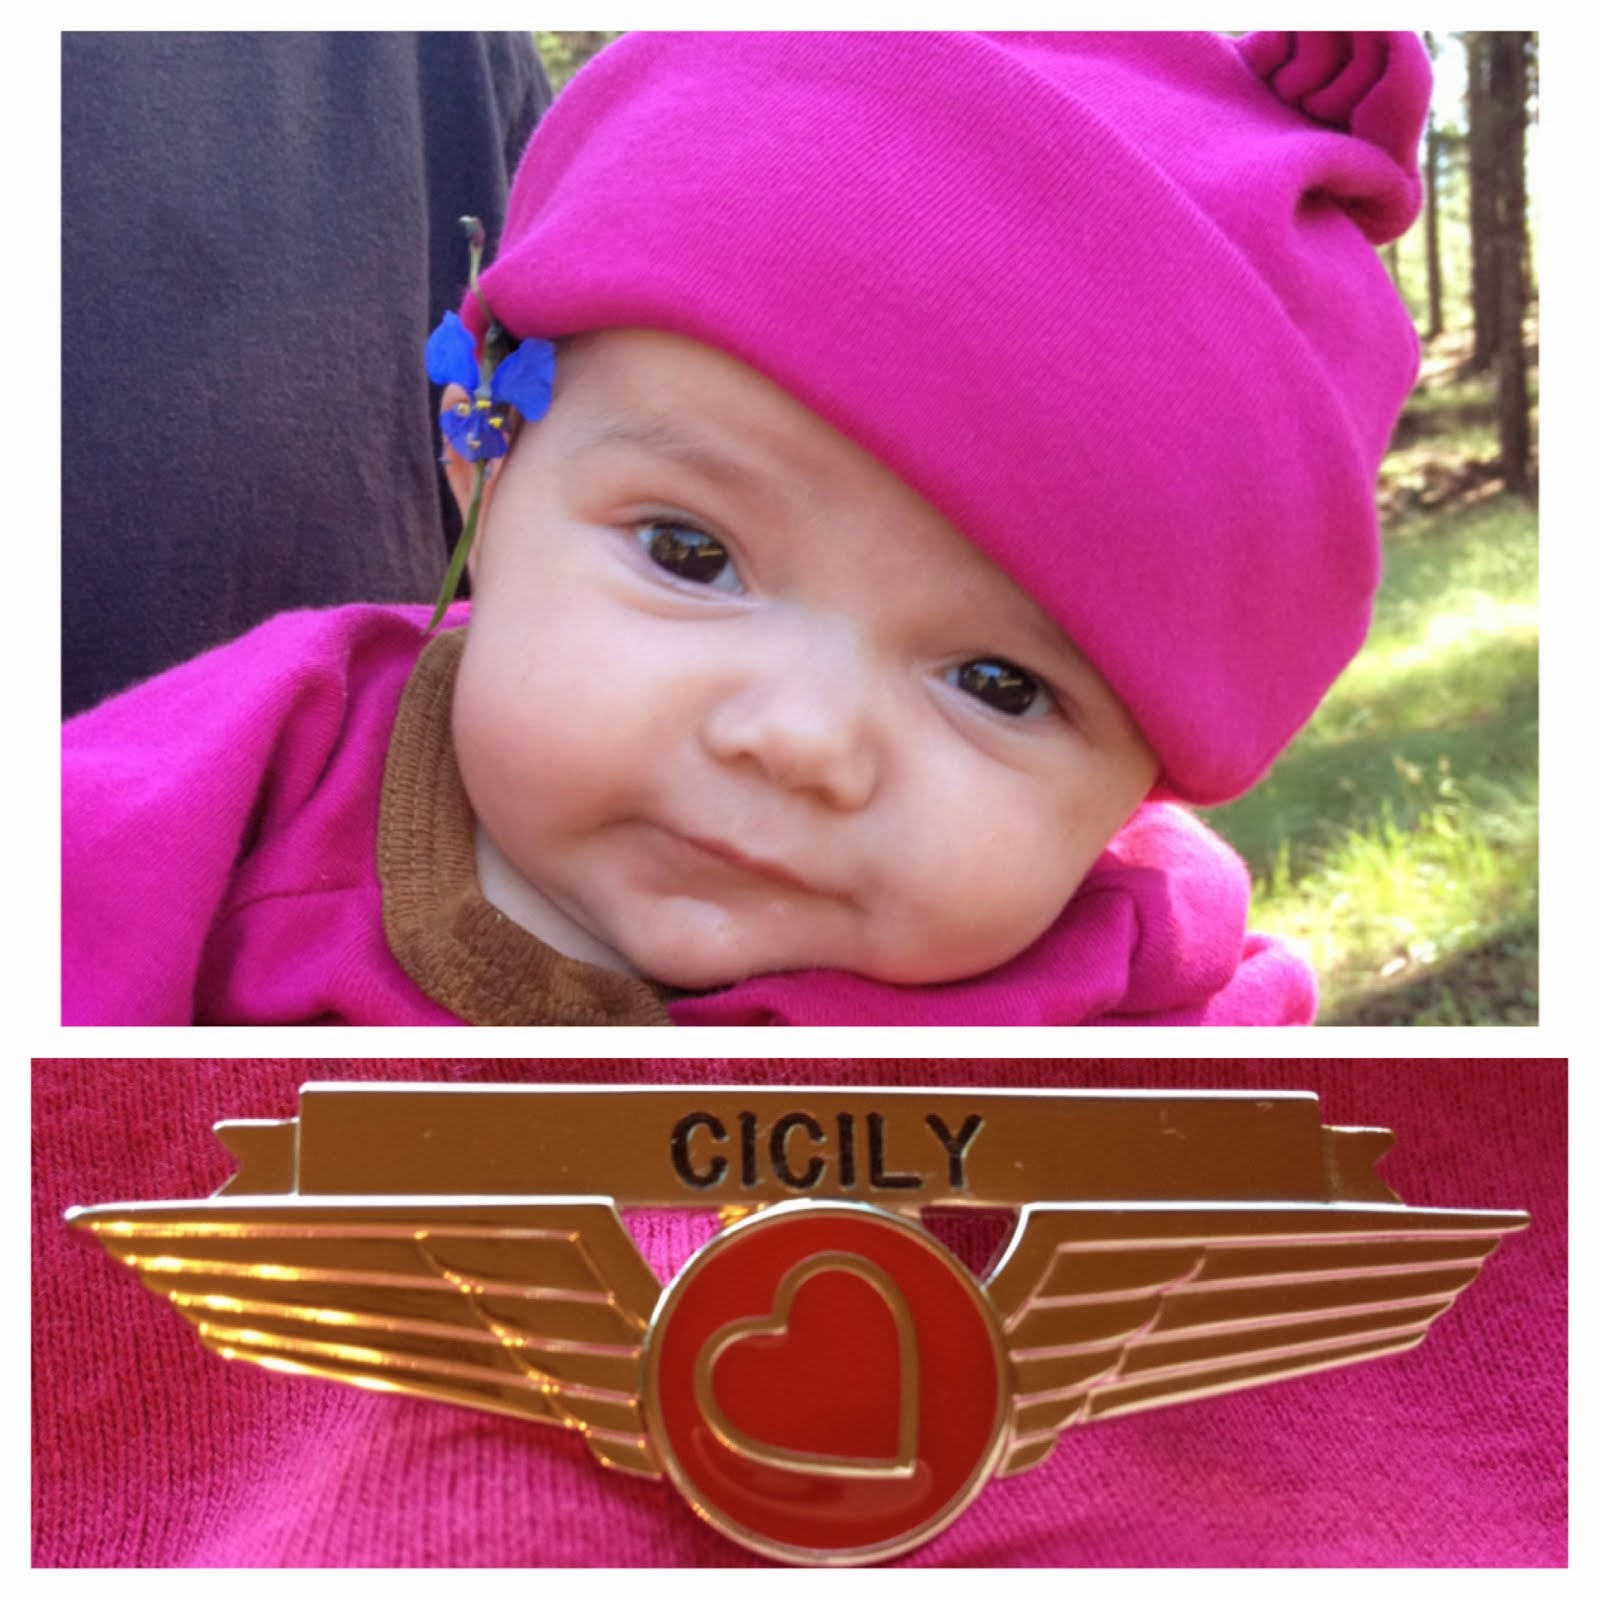 We have a new set of WINGS in the Family...